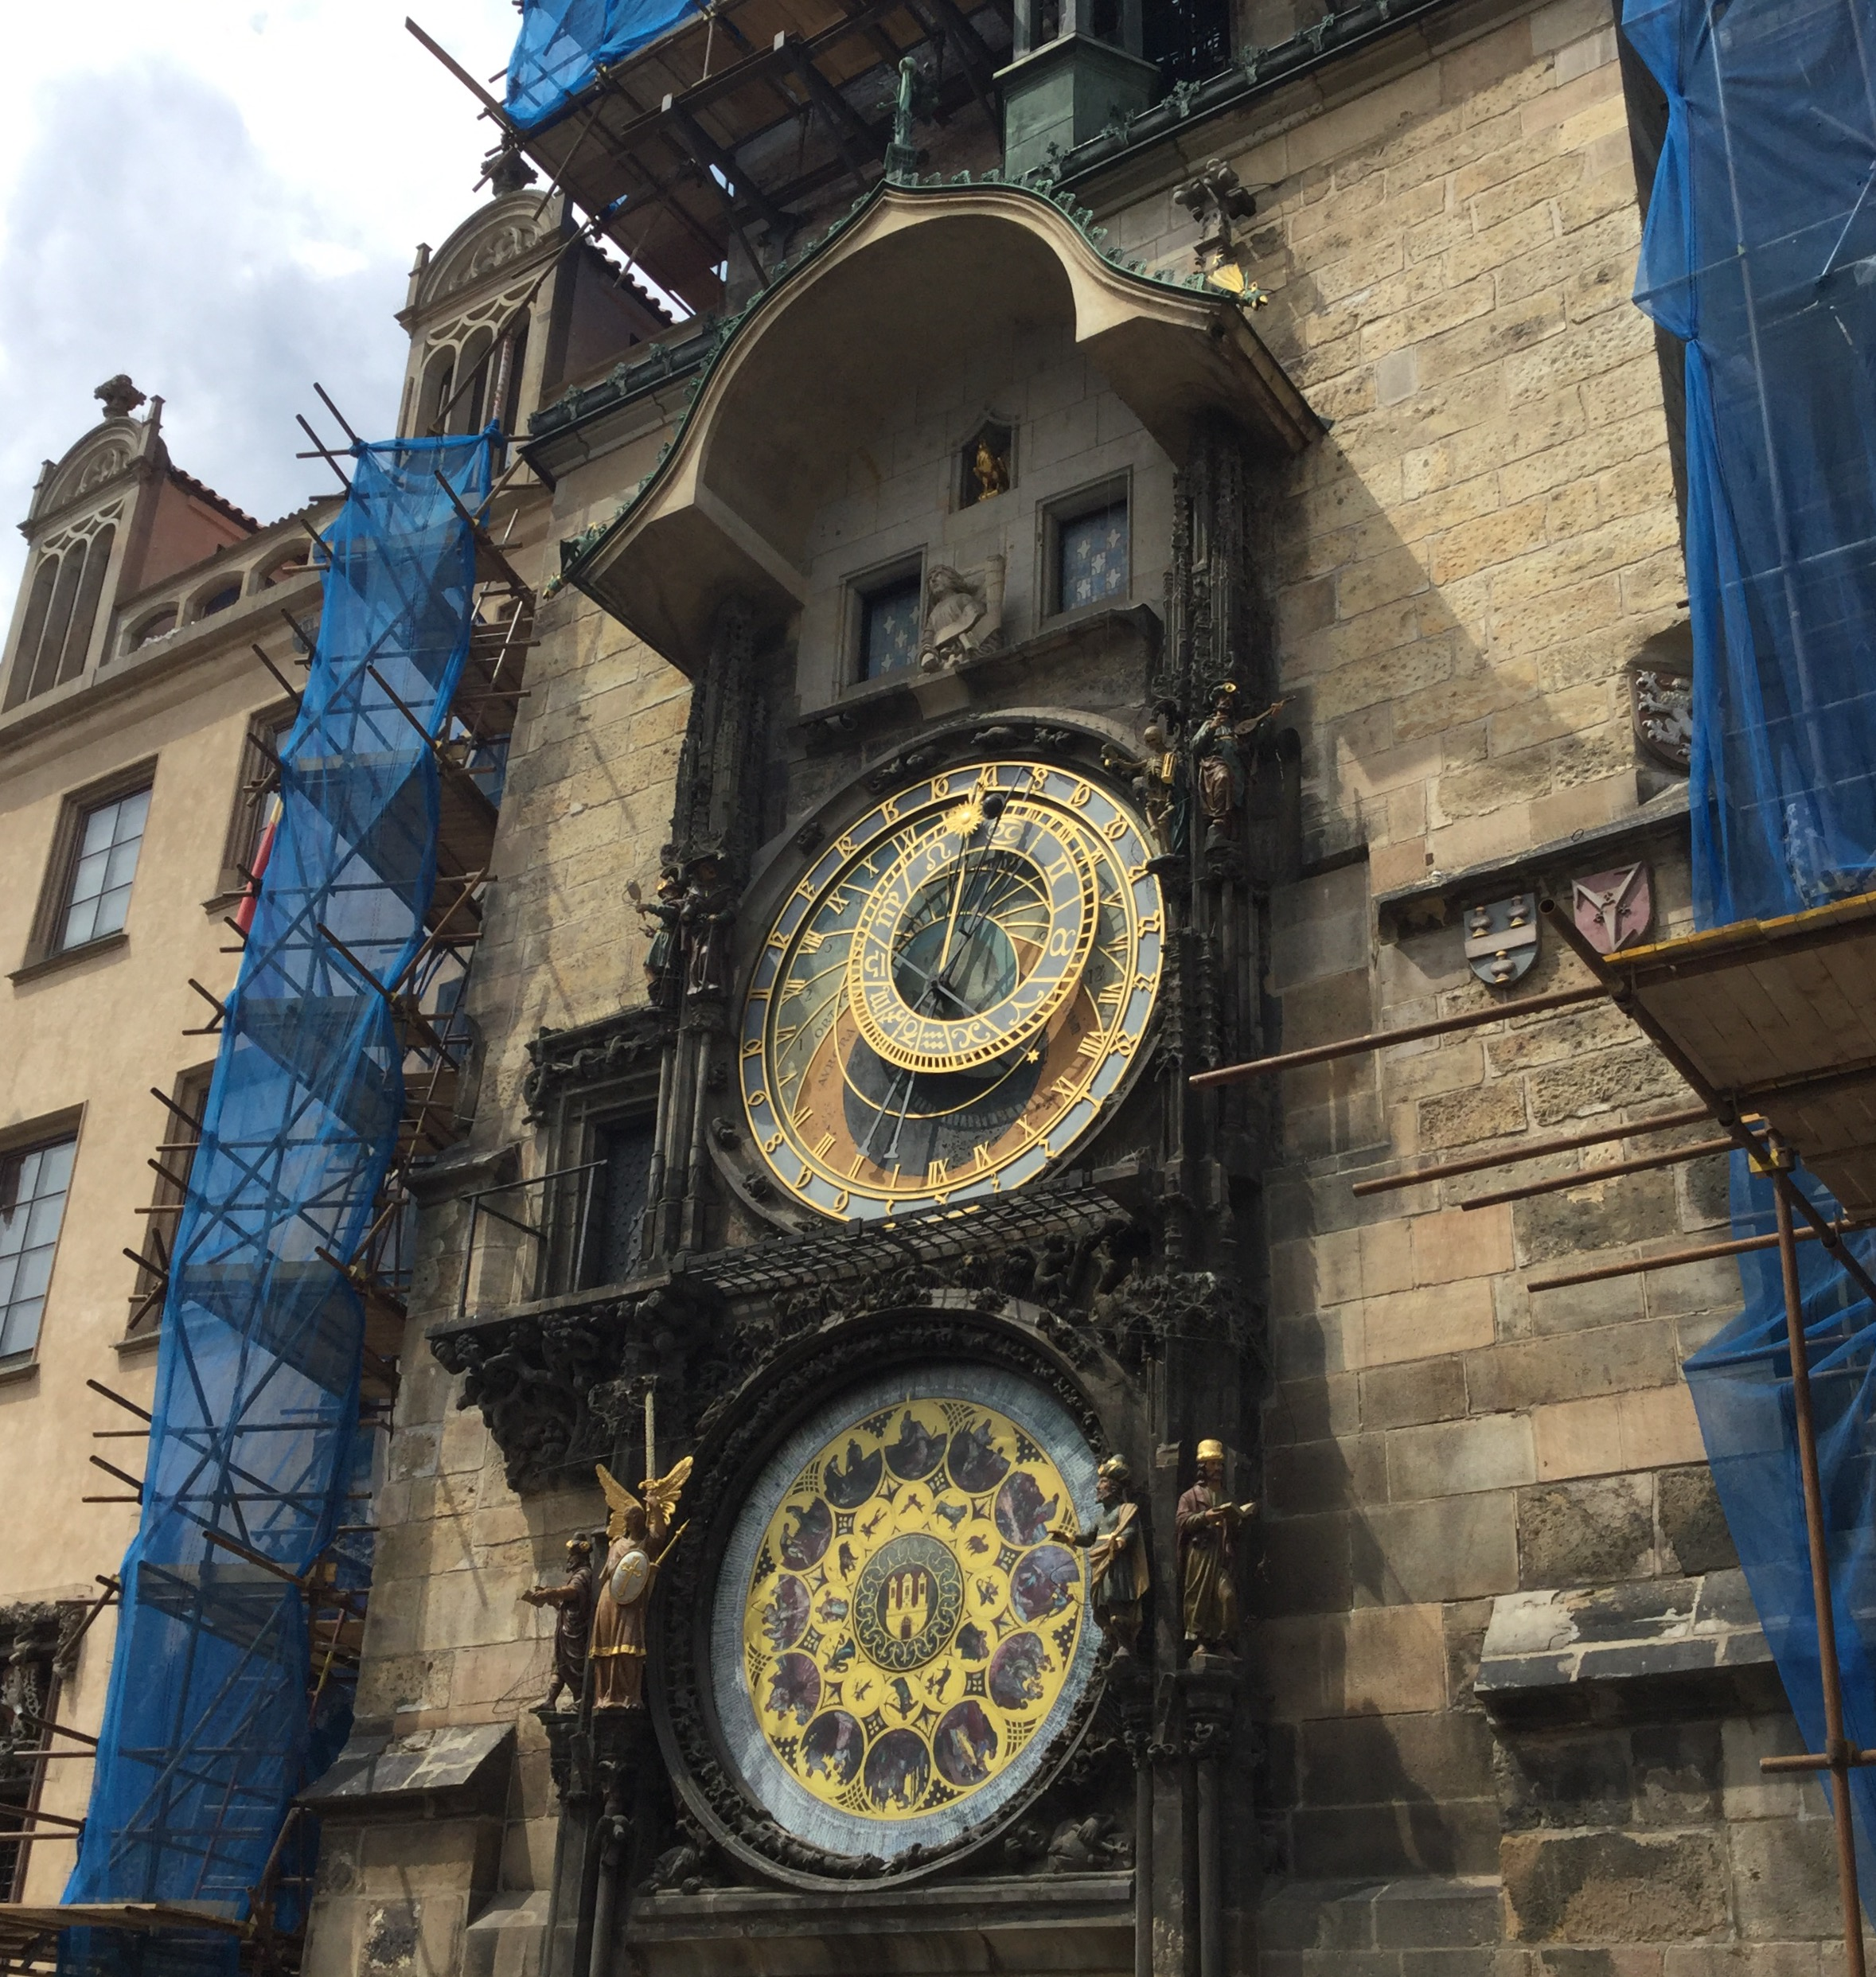 The Astronomical Clock. We are staying about five minutes away from it.